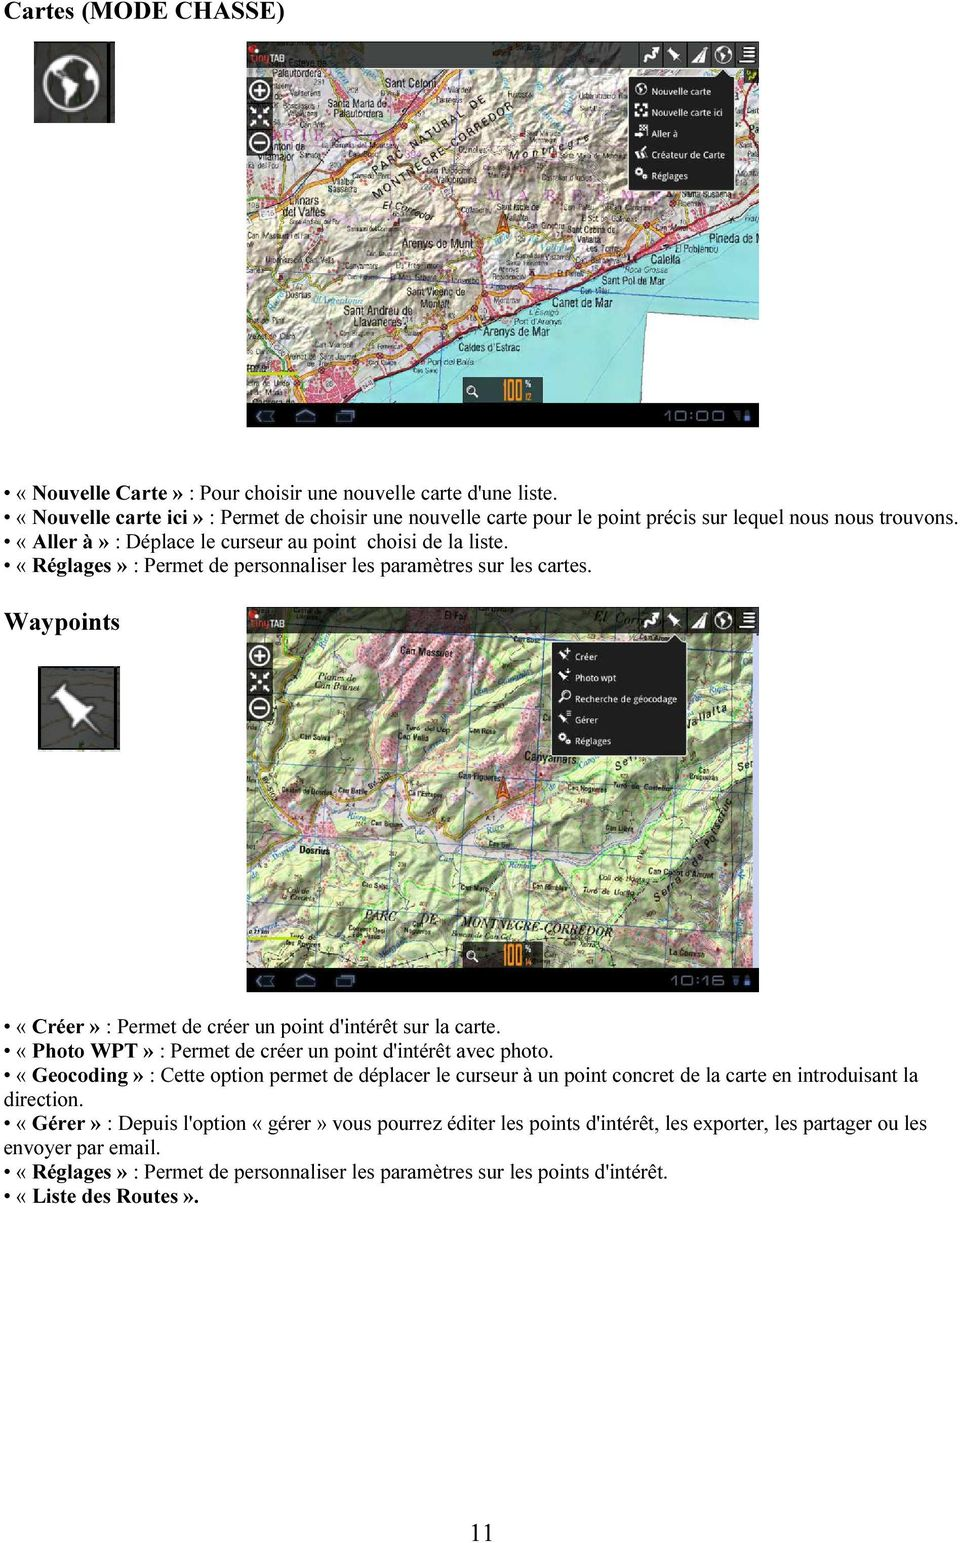 «Photo WPT» : Permet de créer un point d'intérêt avec photo. «Geocoding» : Cette option permet de déplacer le curseur à un point concret de la carte en introduisant la direction.